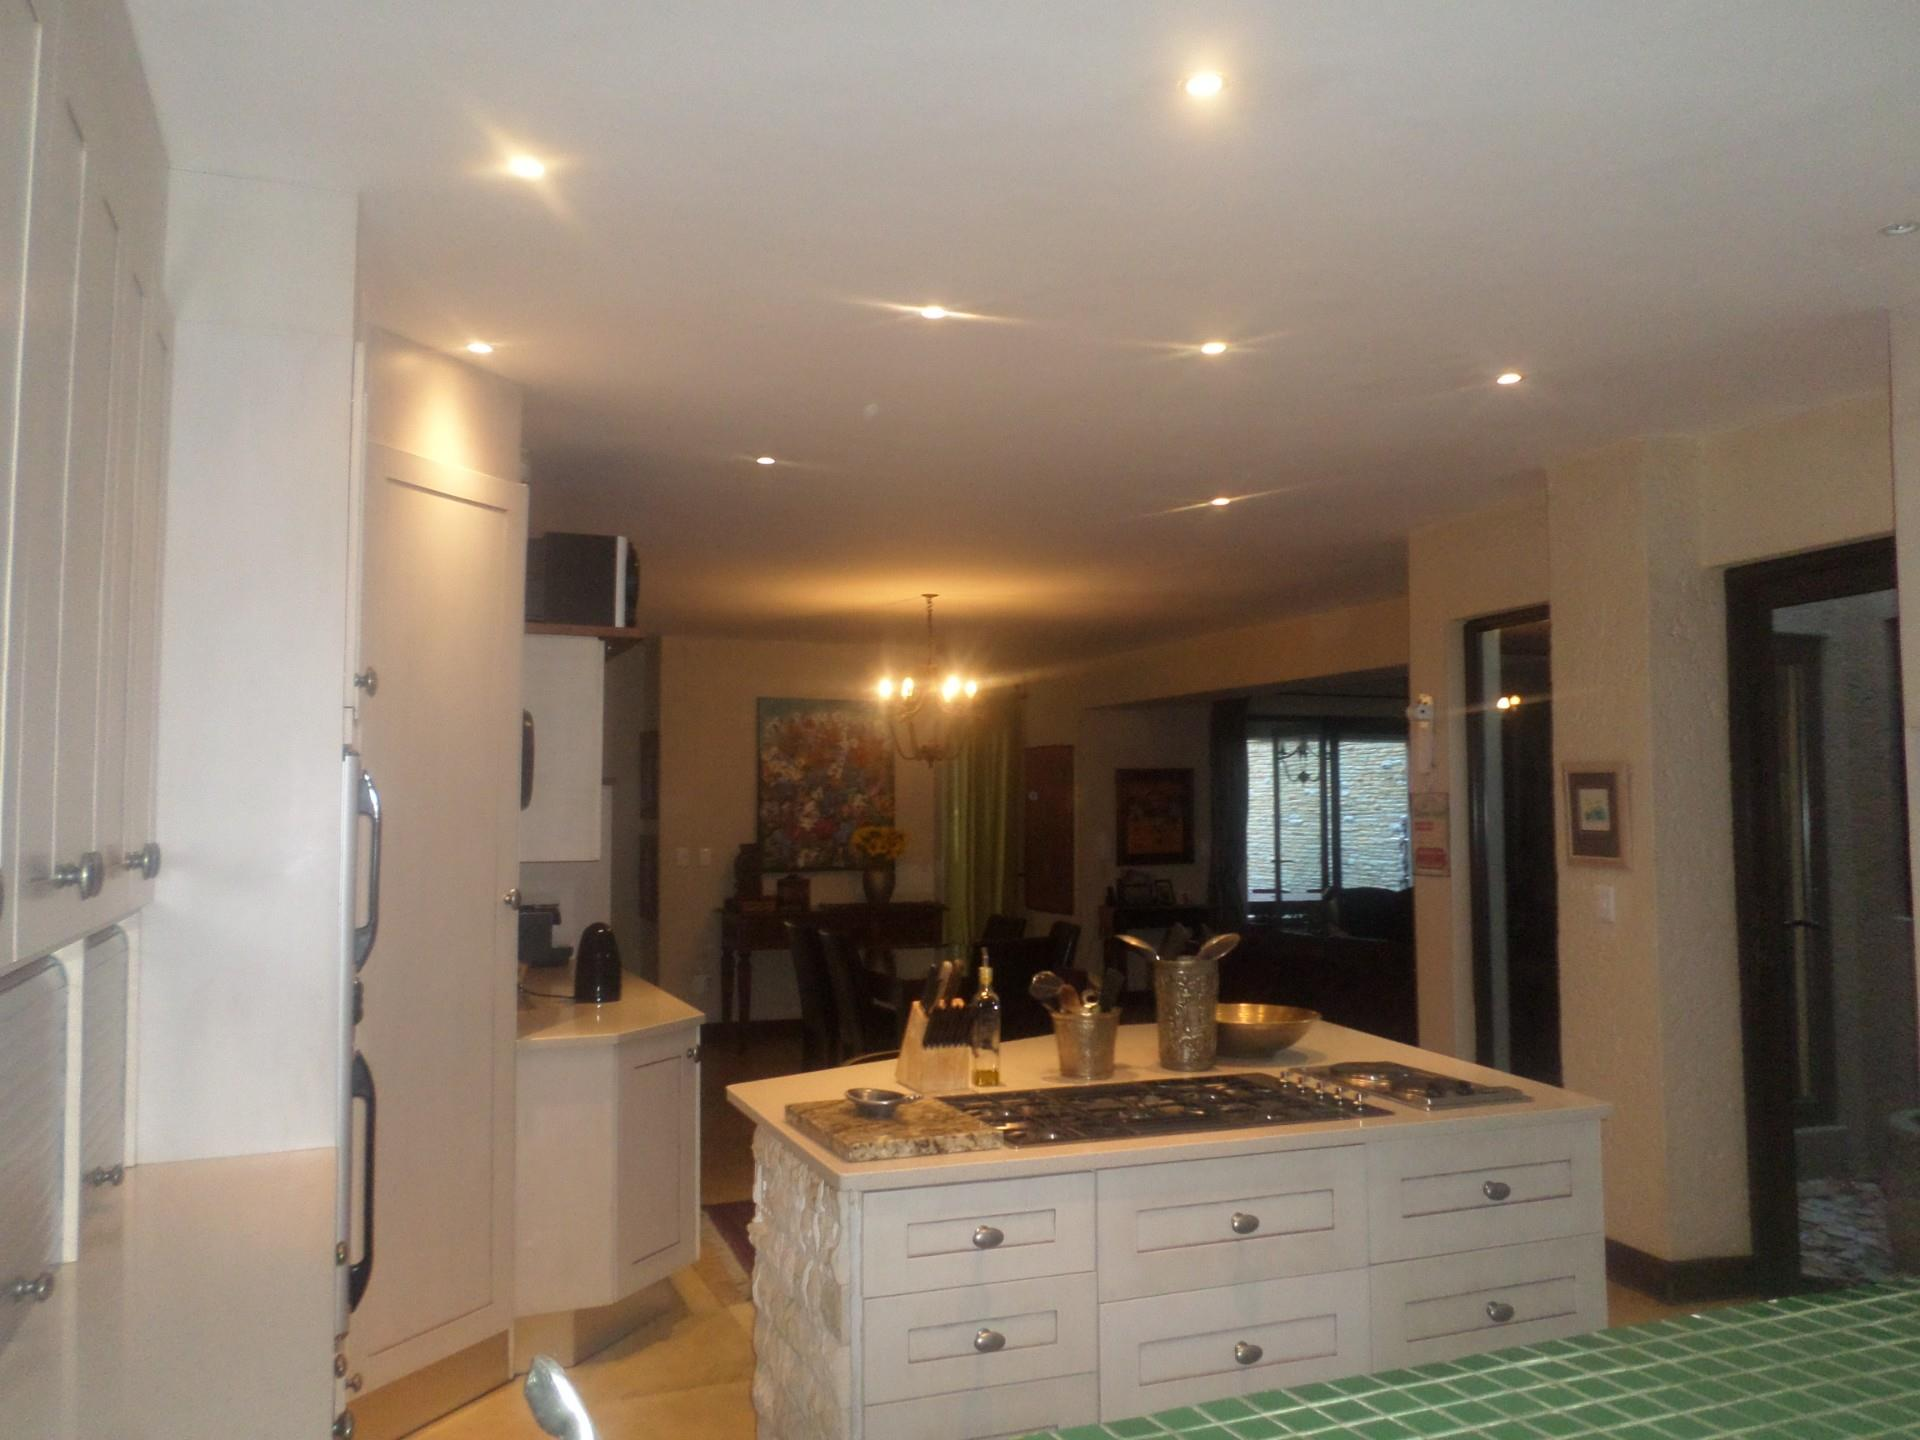 4 Bedroom House For Sale in Ludwigsdorf